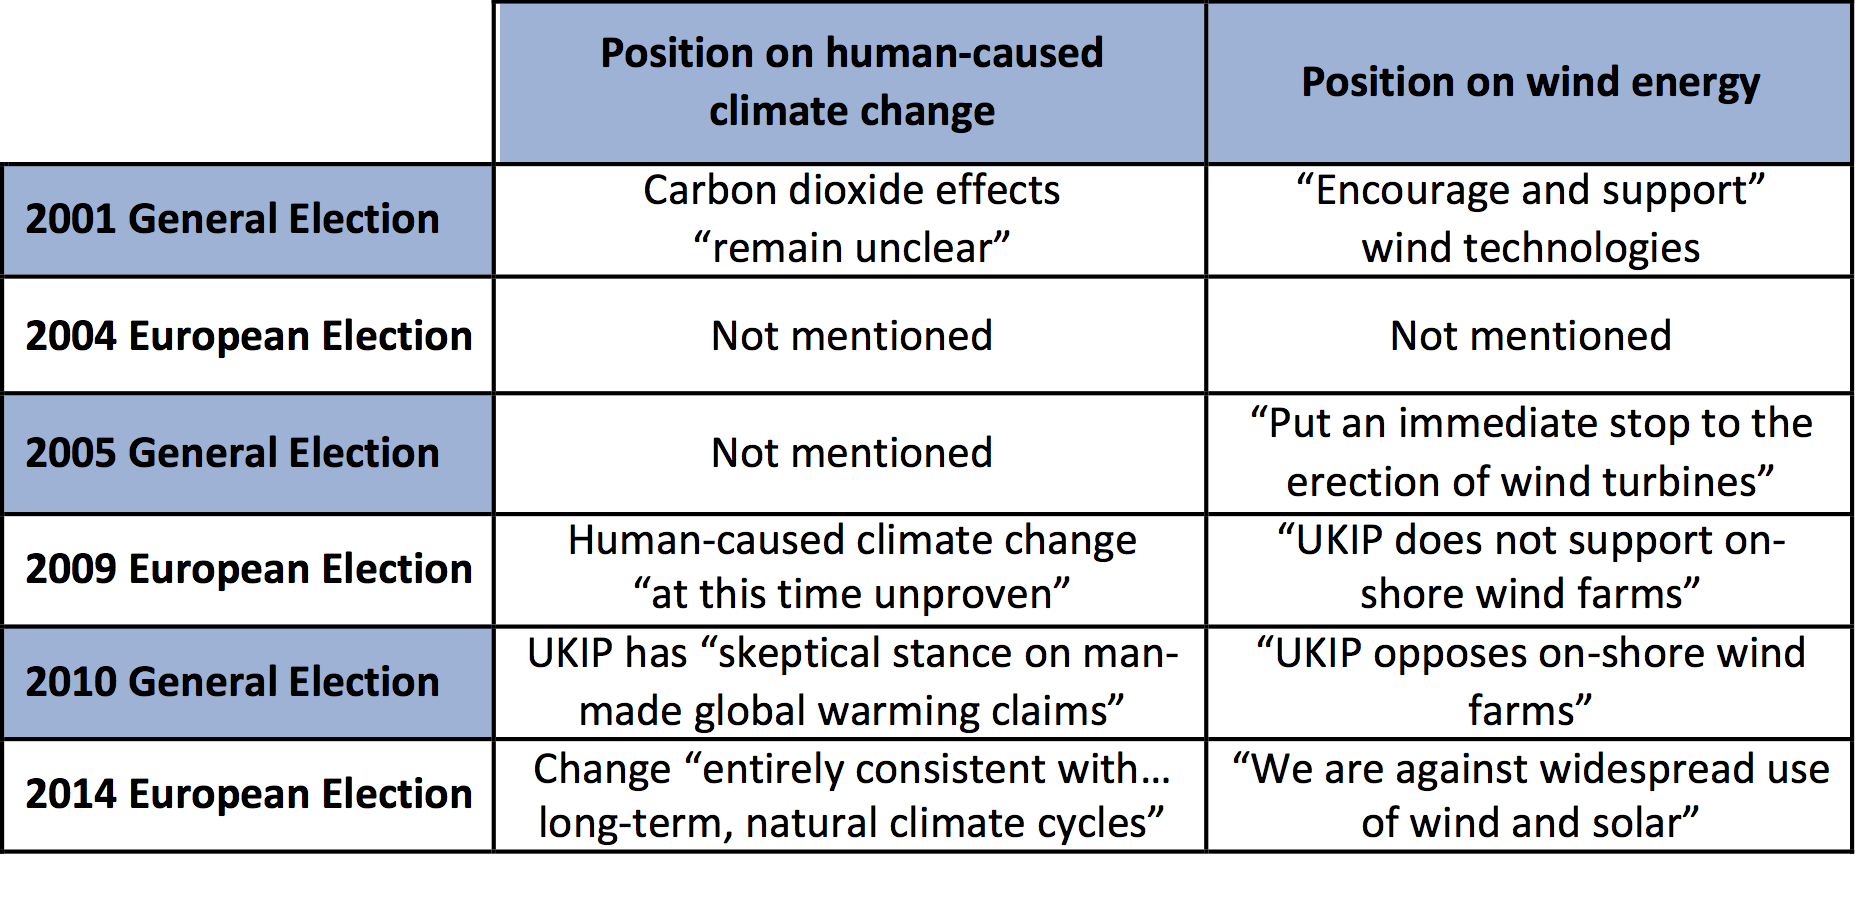 Table 1 UKIP Manifesto Positions on Climate Change and Wind Energy (Sources: see Note 2 below)